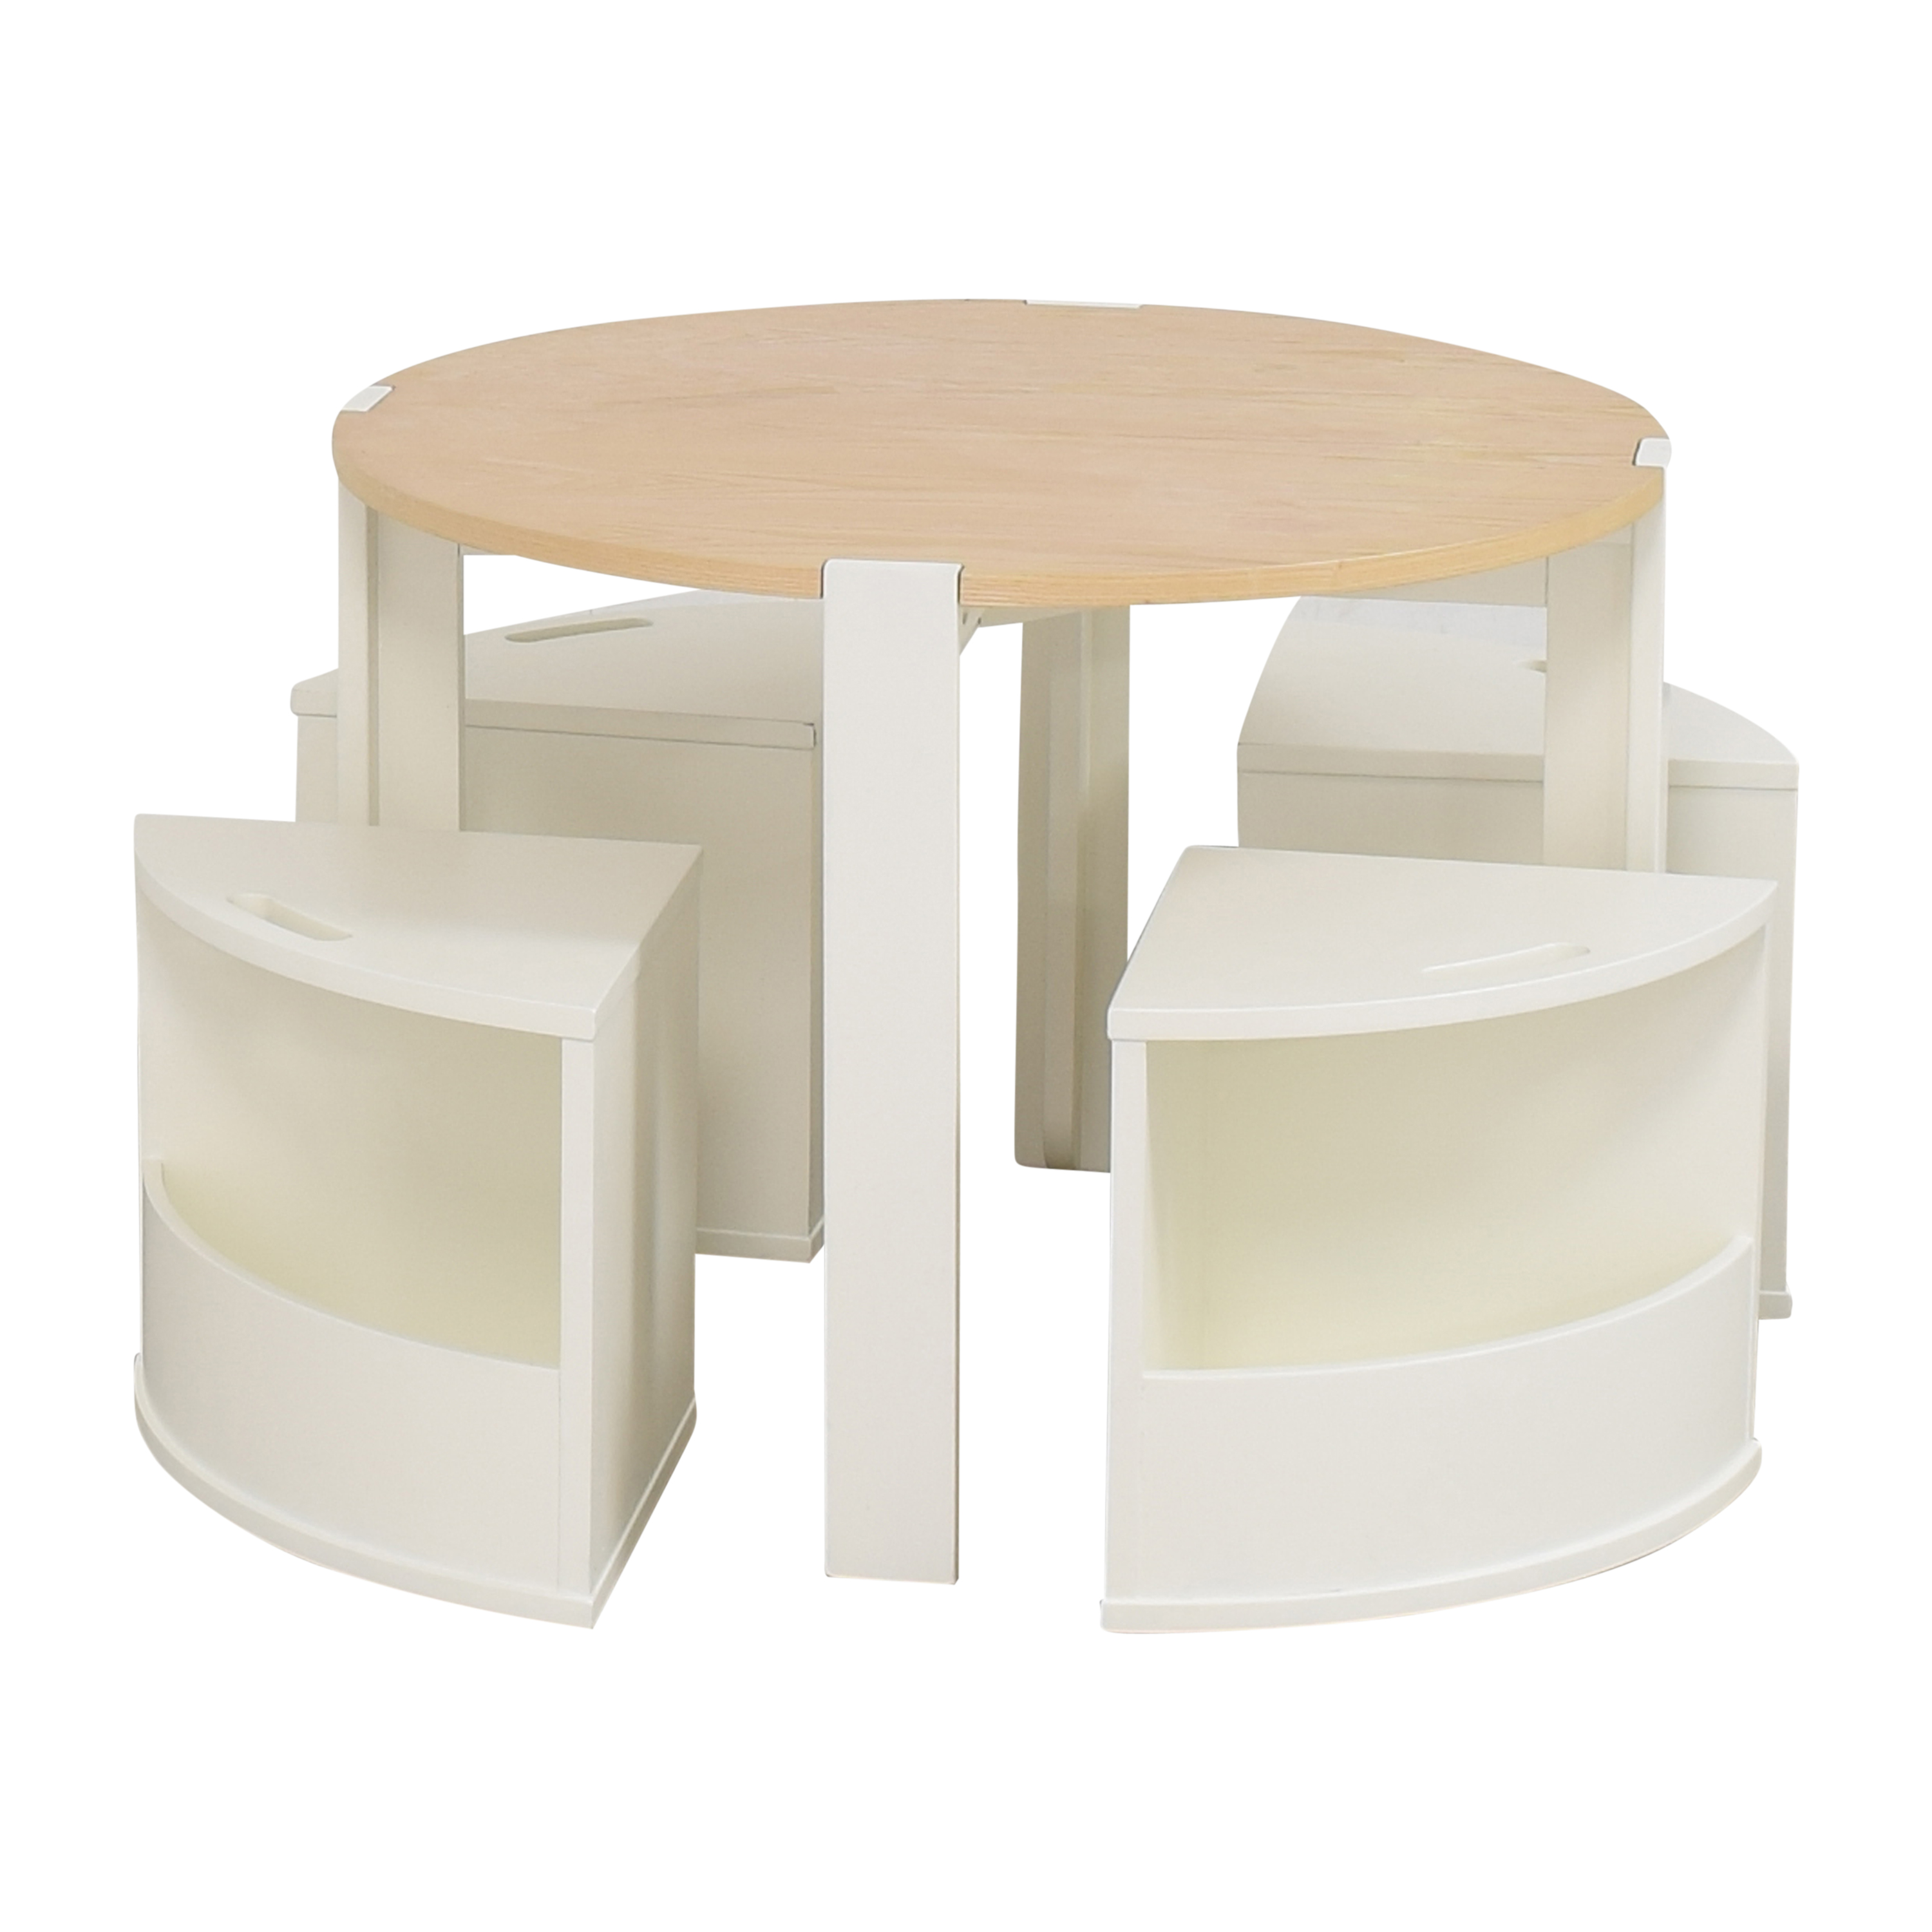 Crate & Barrel Crate & Barrel Nesting Play Table and Chairs on sale